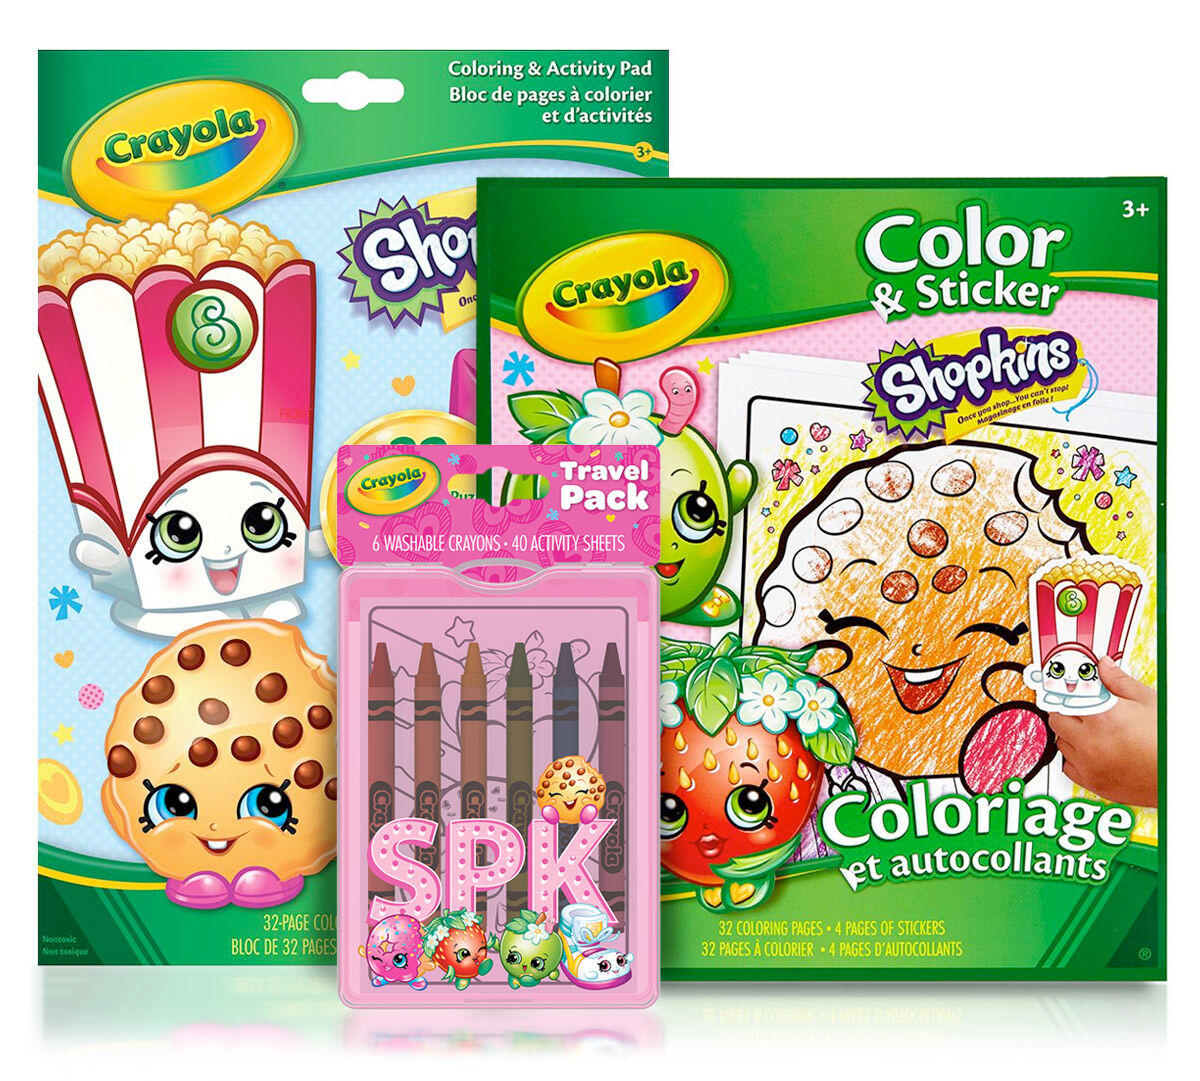 Shopkins Coloring Pages, Stickers & Activities